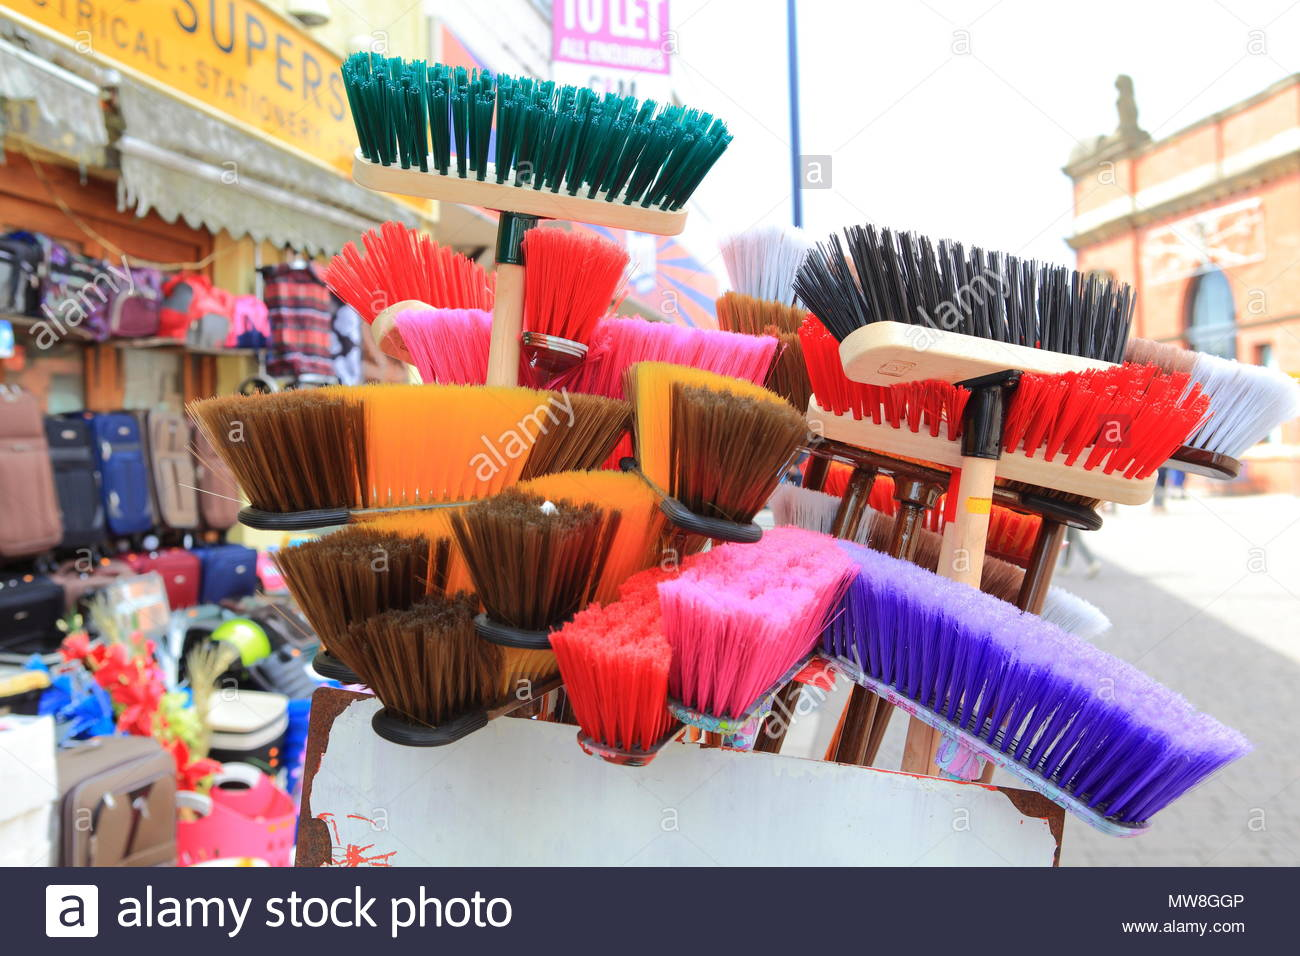 Household Cleaning Utensils & Brushes Displayed Outside A Pound Busters Store At Ashton-Under-Lyne Tameside England June 2018 - Stock Image